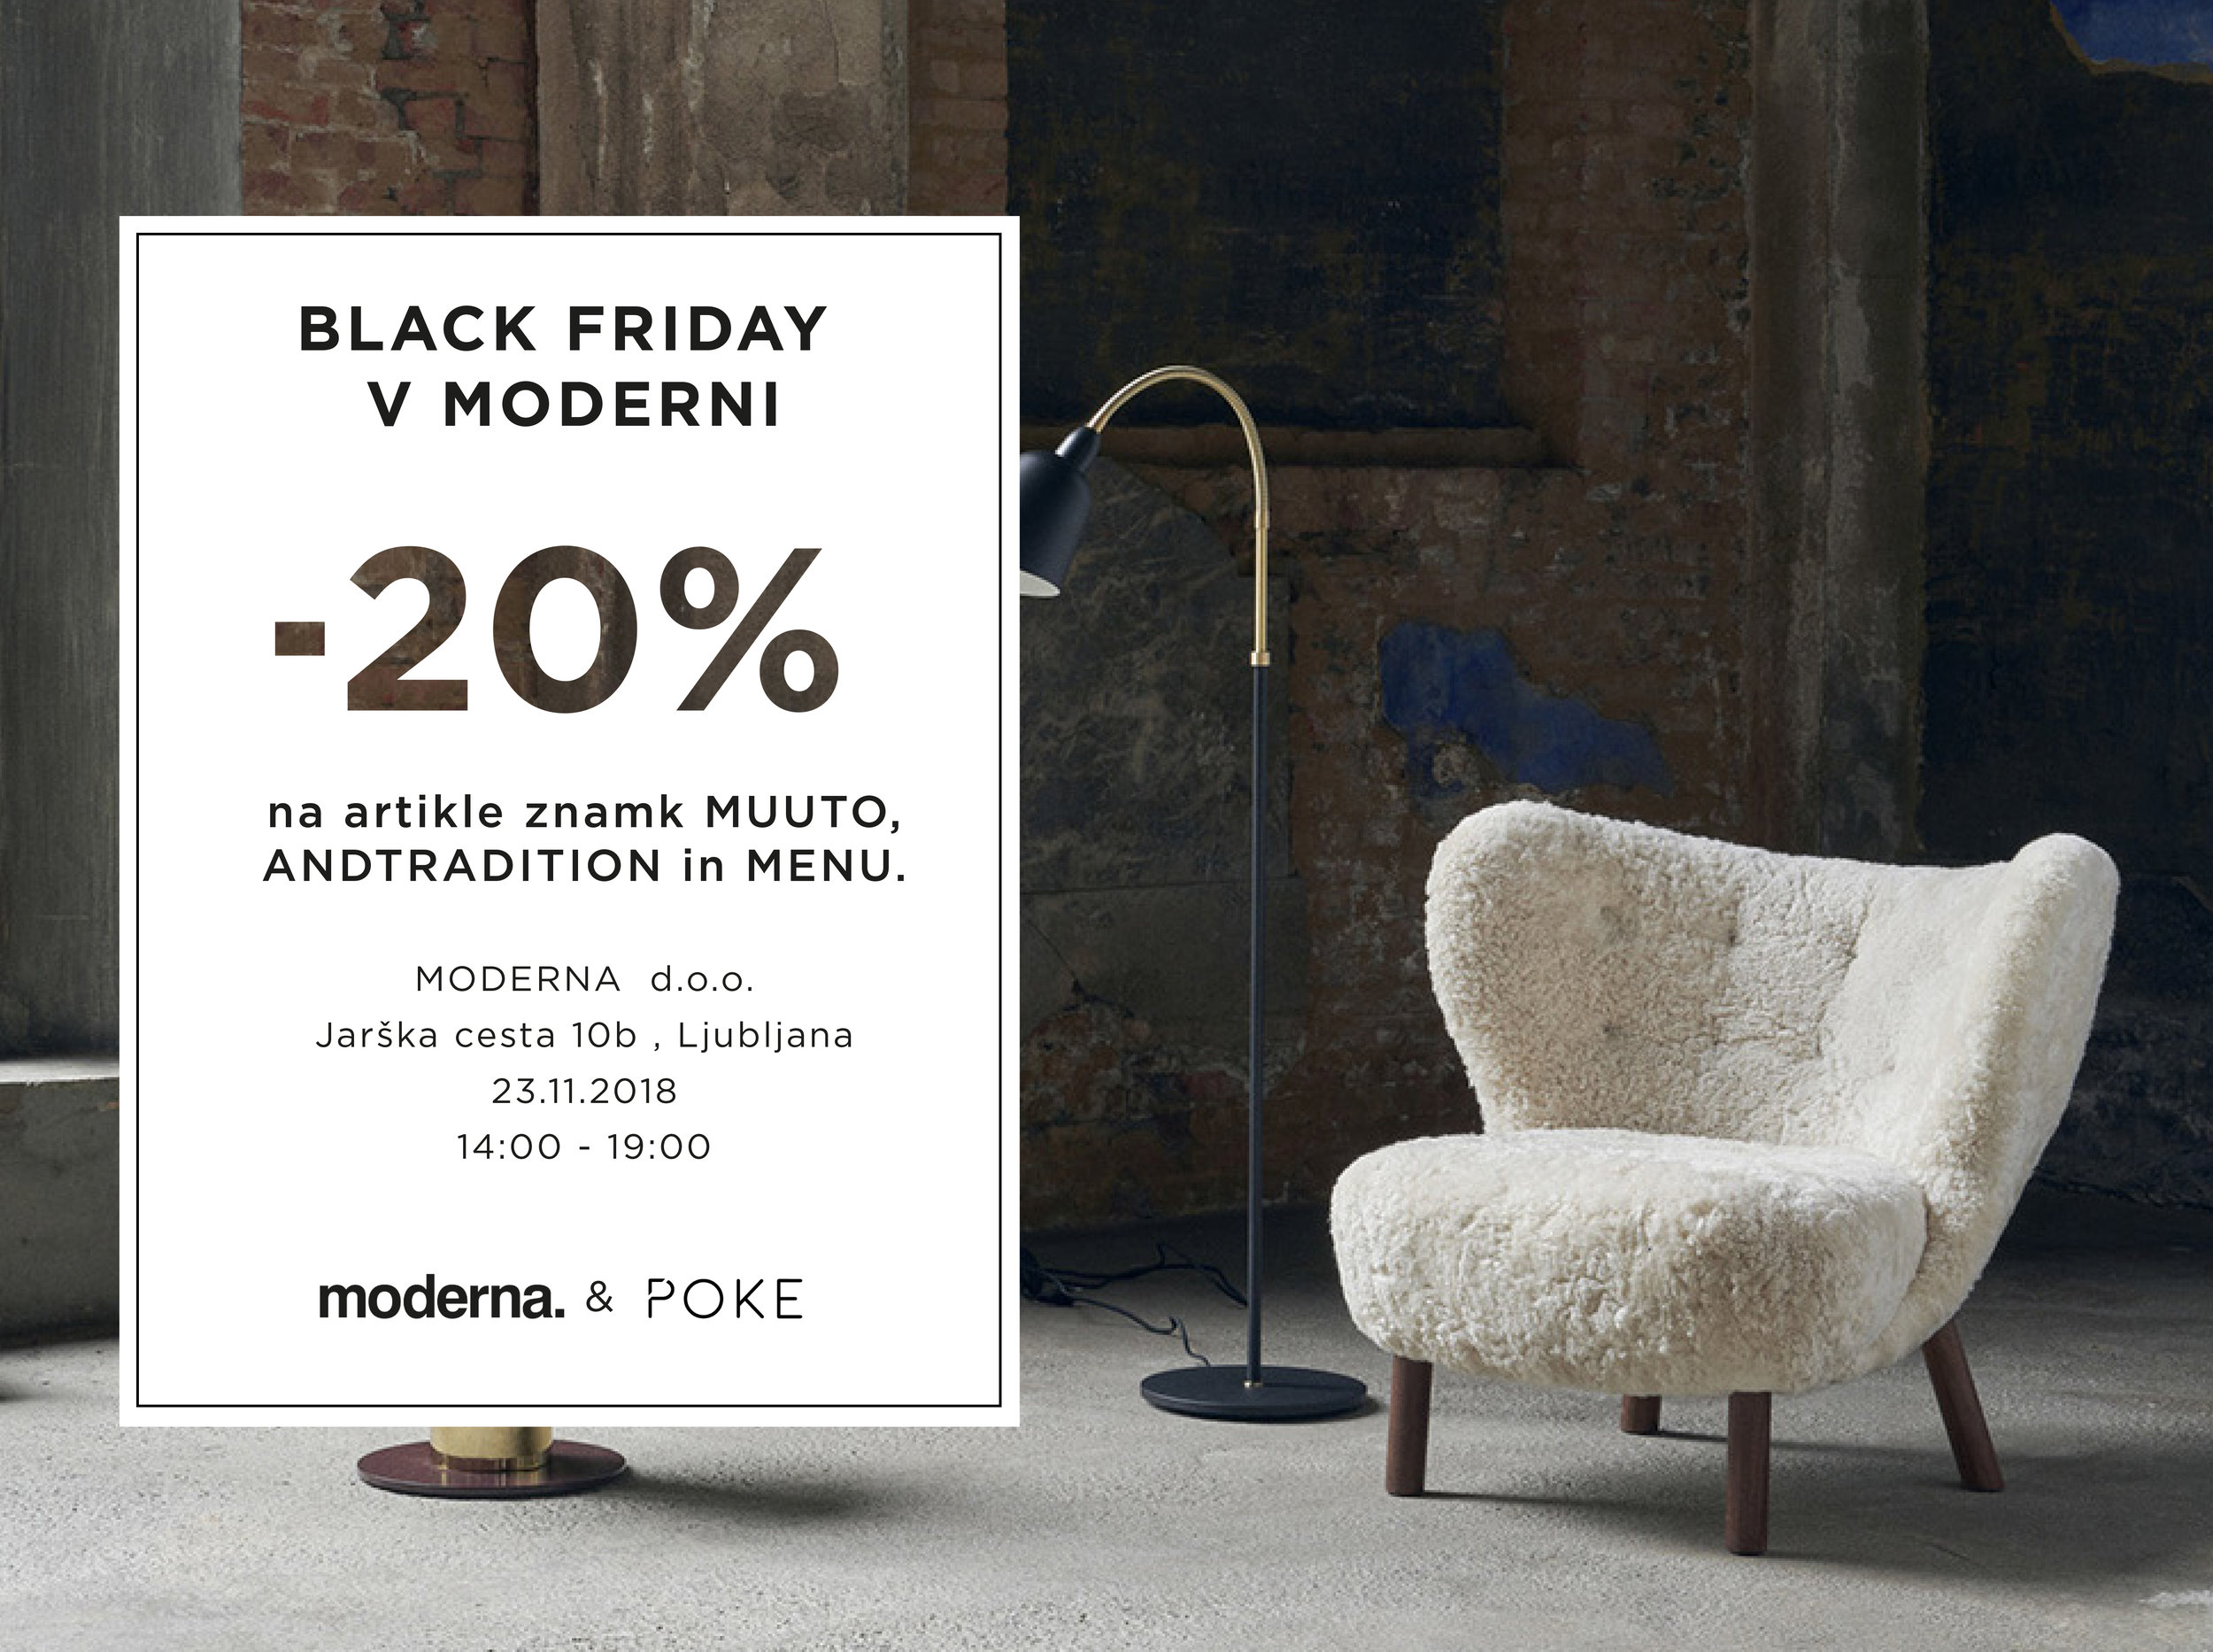 black friday_poke_studio_moderna.jpg